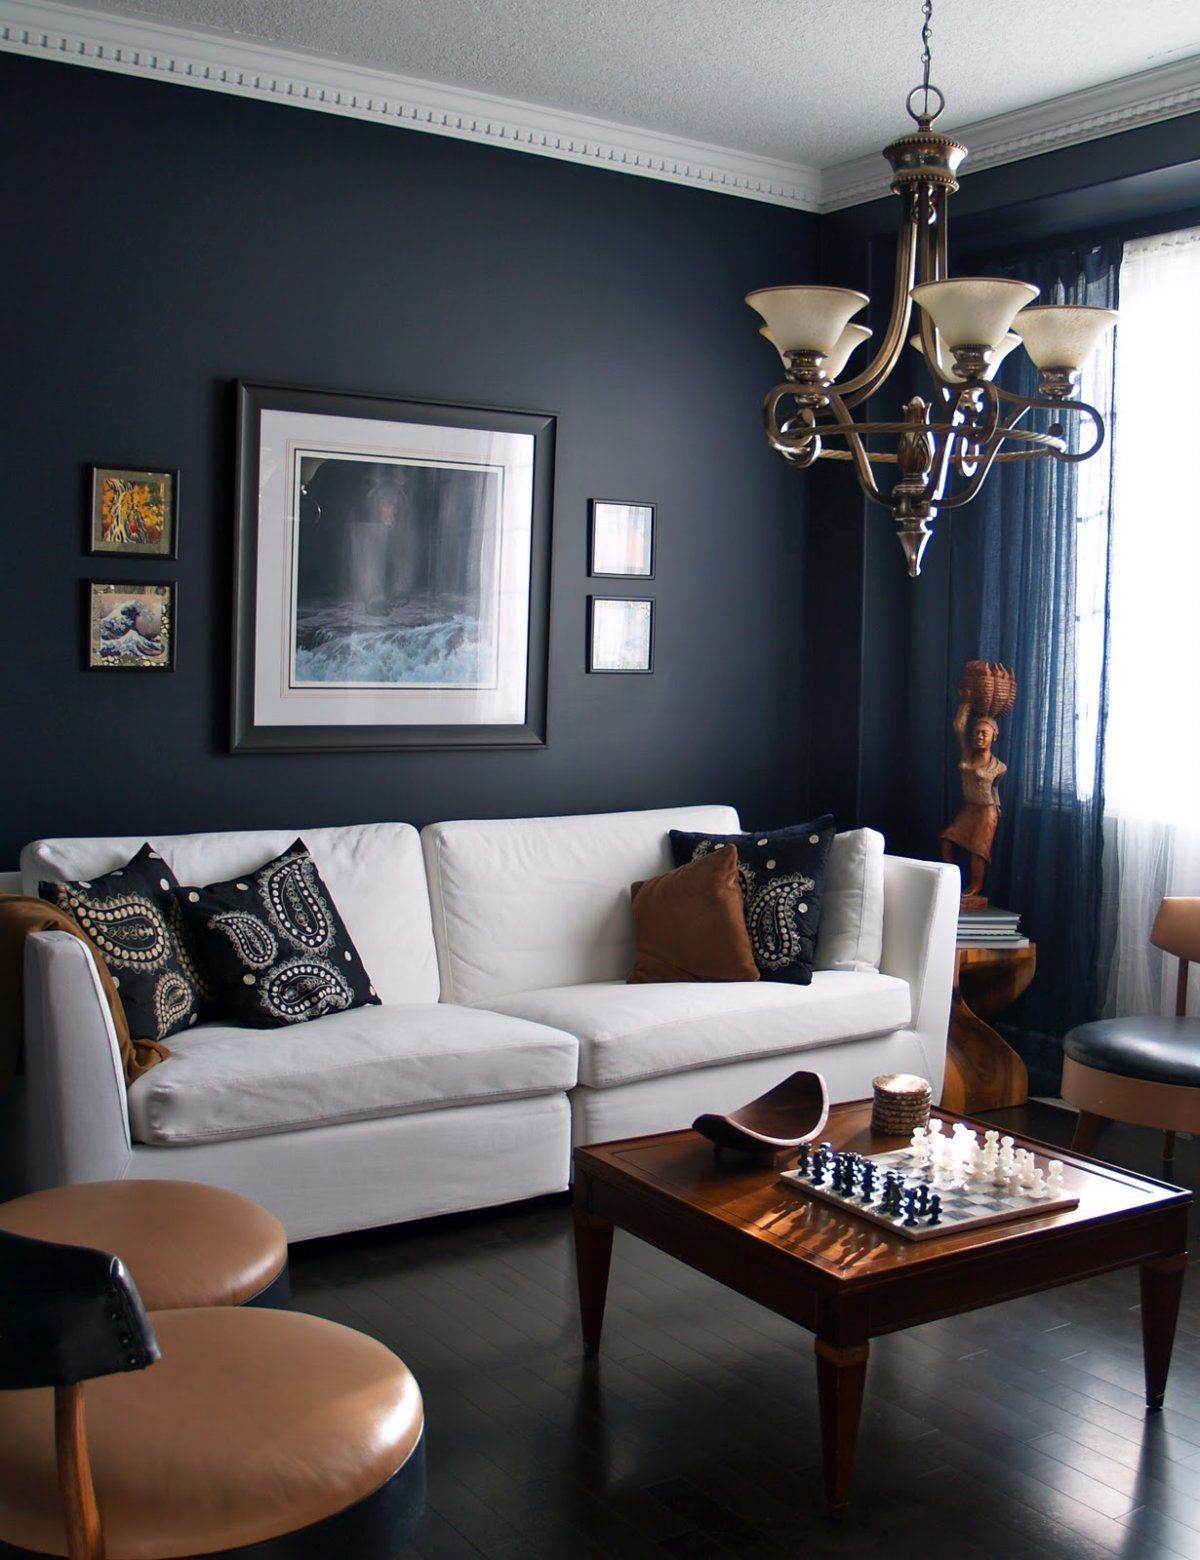 15 beautiful dark blue wall design ideas navy blue walls white navy blue living room alluring of 15 beautiful dark blue wall design ideas blue